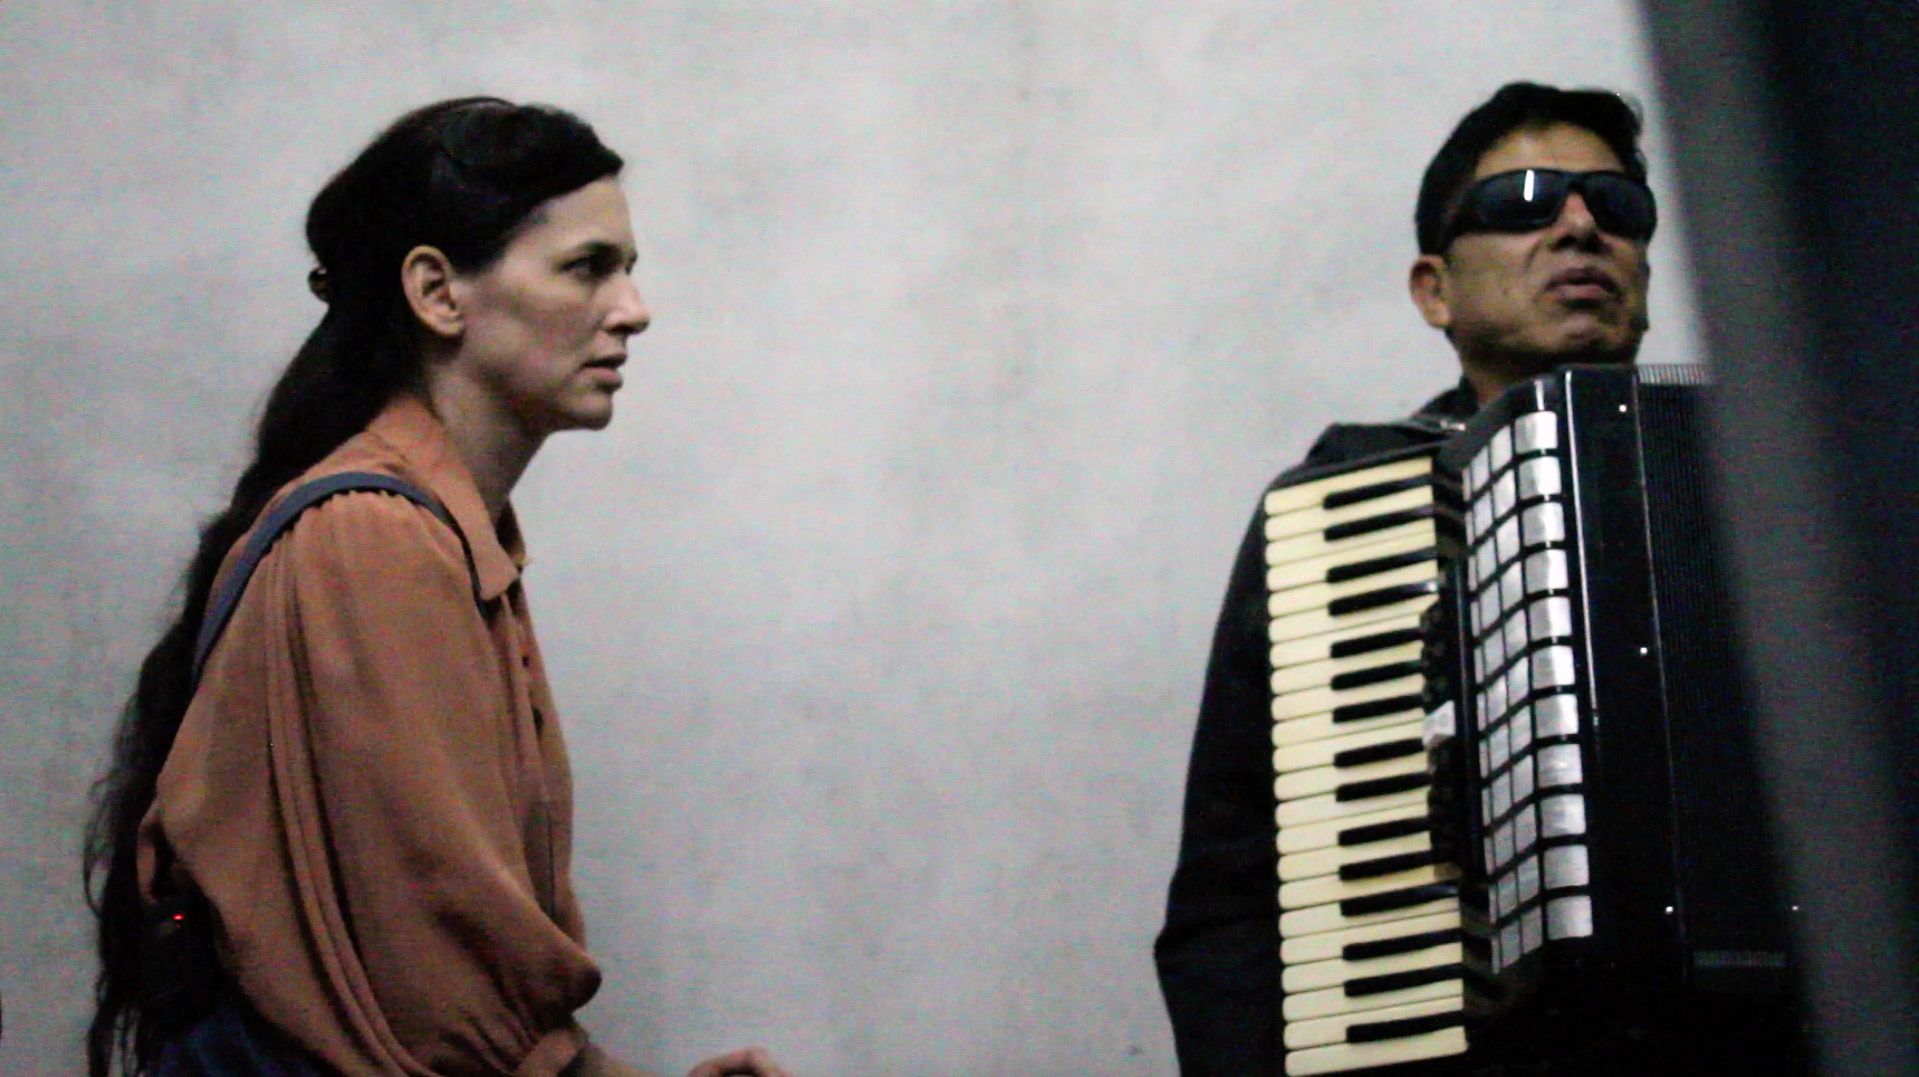 Artist Taryn Simon and Ecuadorian mourner Anibal Gonzalez. An Occupation of Loss, 2016. Video still courtesy Taryn Simon Studio.